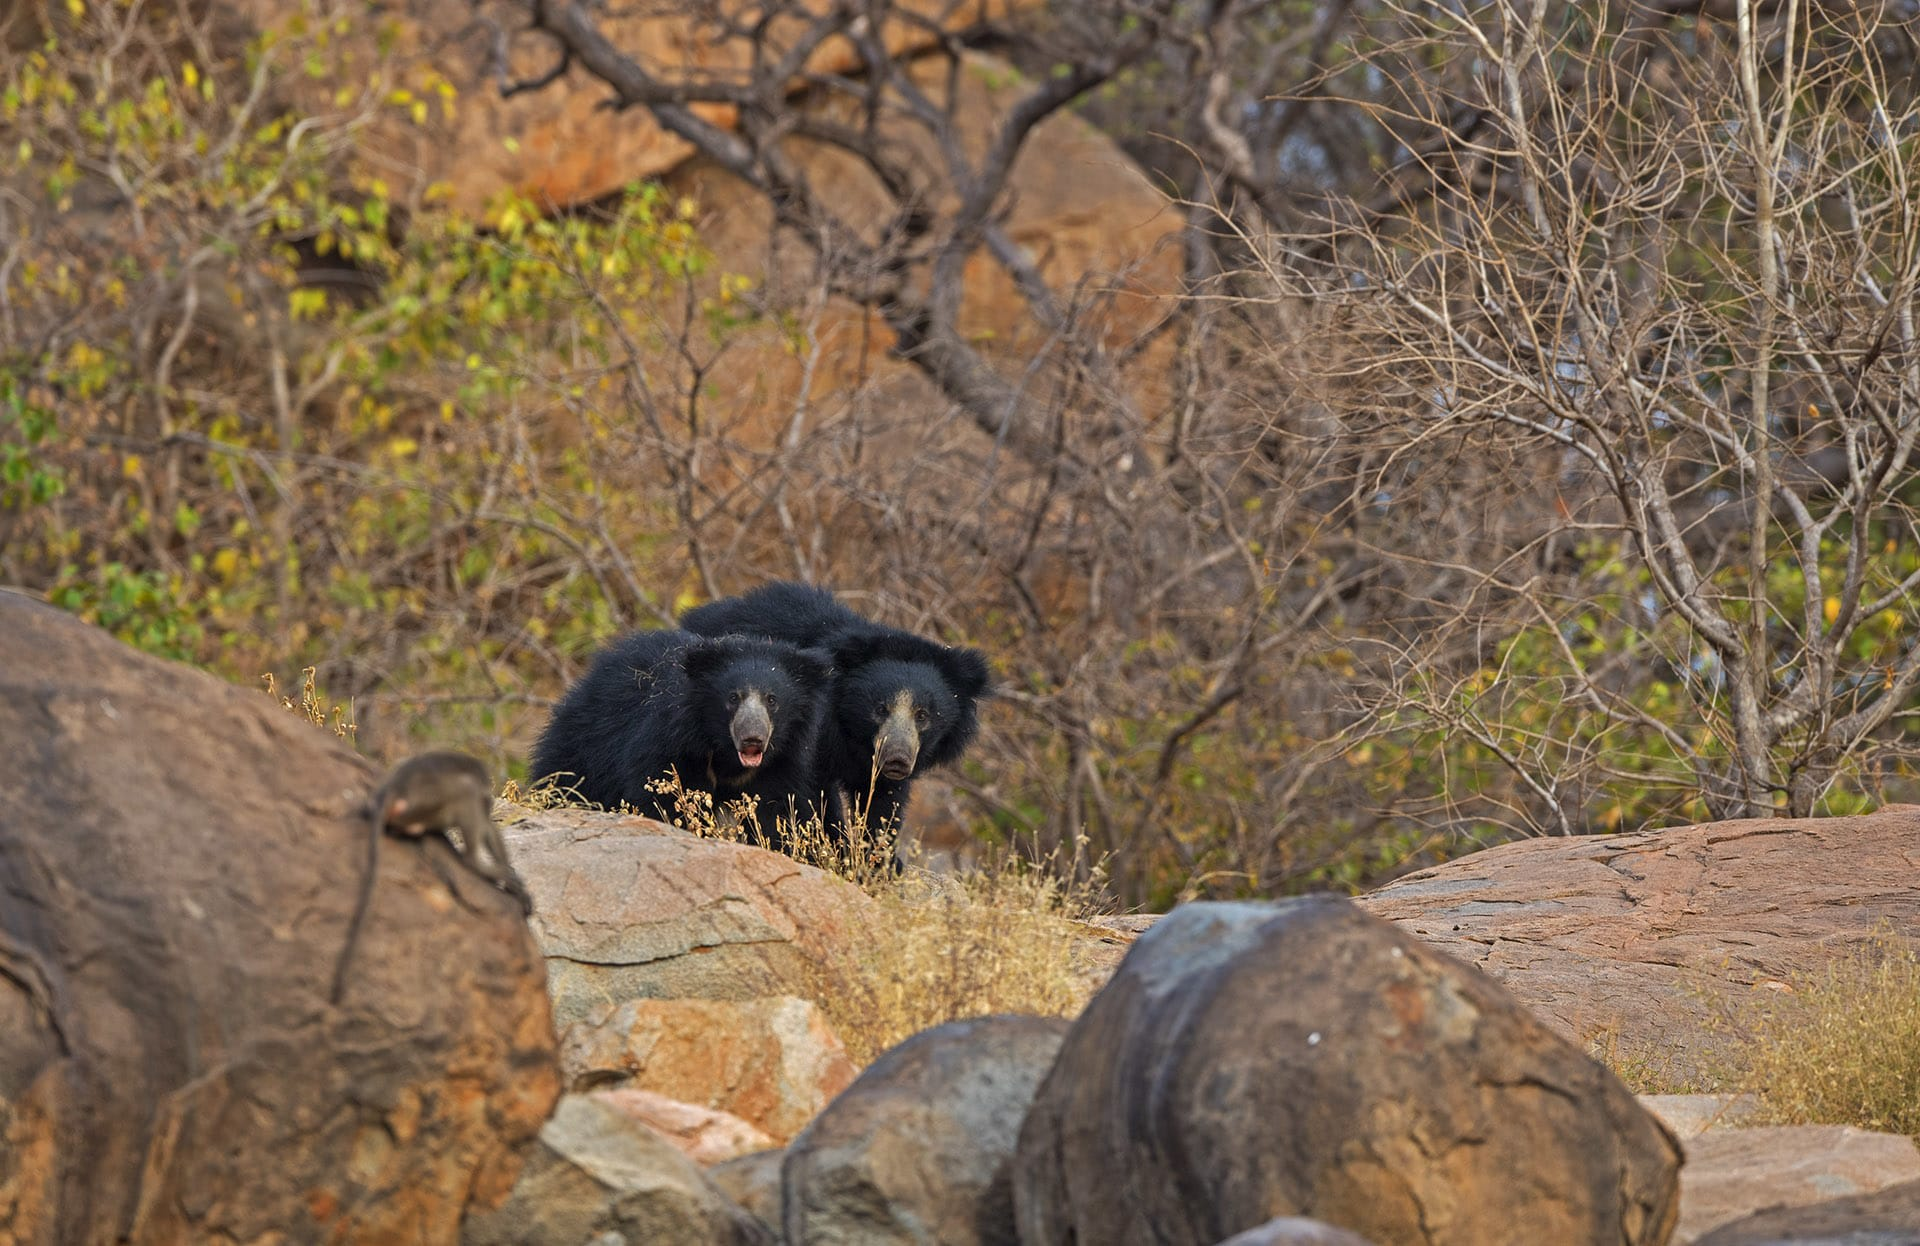 As human populations in India swell, interactions with wildlife such as sloth bears is on the rise. Now more than ever, it is crucial that we understand the ecological needs of sloth bears, so we may reduce violent encounters, and perchance, even co-exist with these seed-dispersing, insect-loving guardians of the forest.